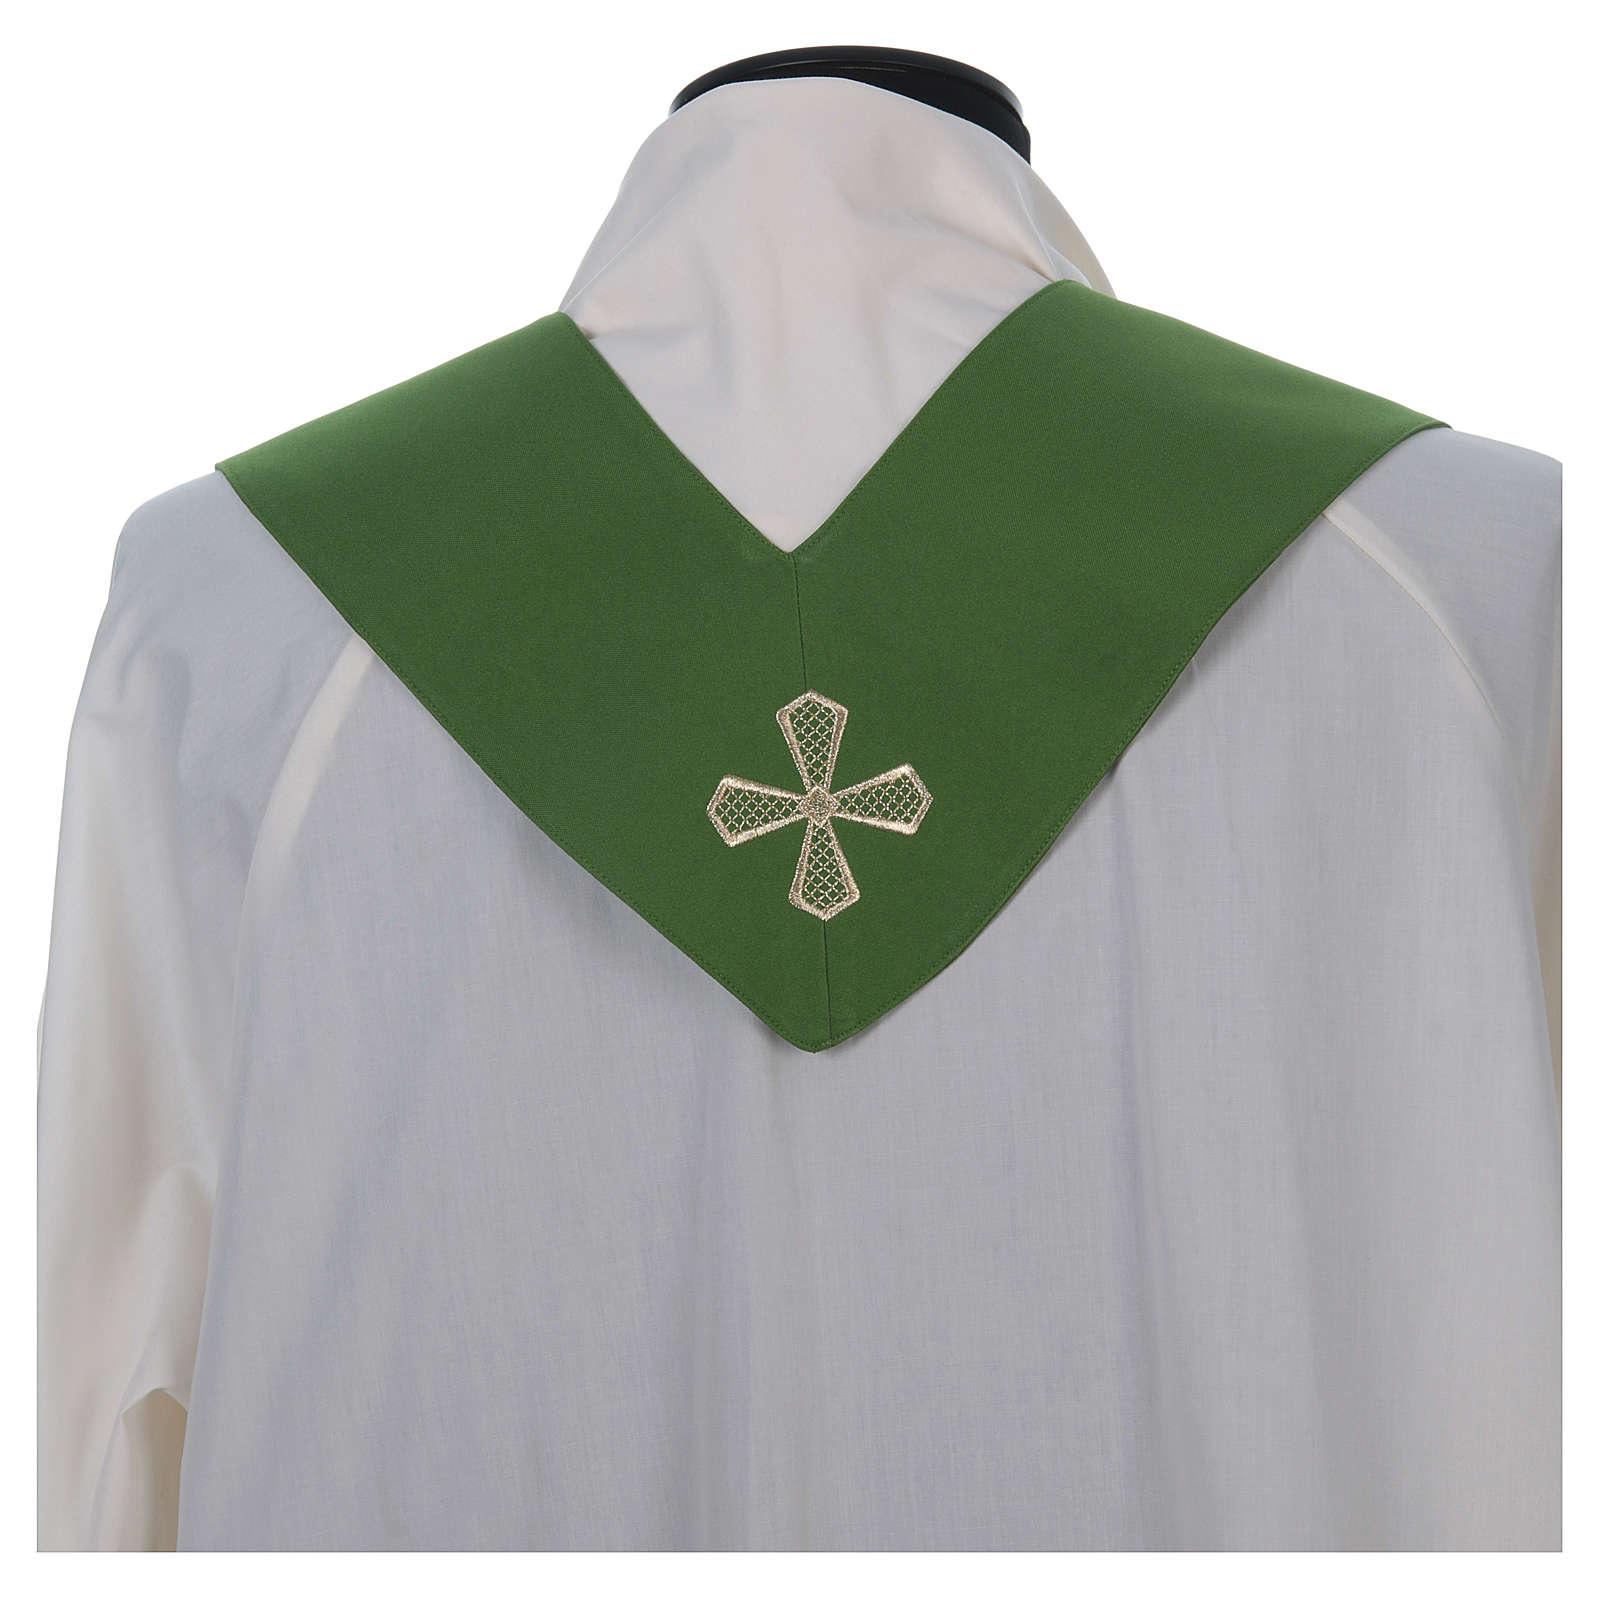 Chasuble 100% polyester inserts tissu croix brodée 4